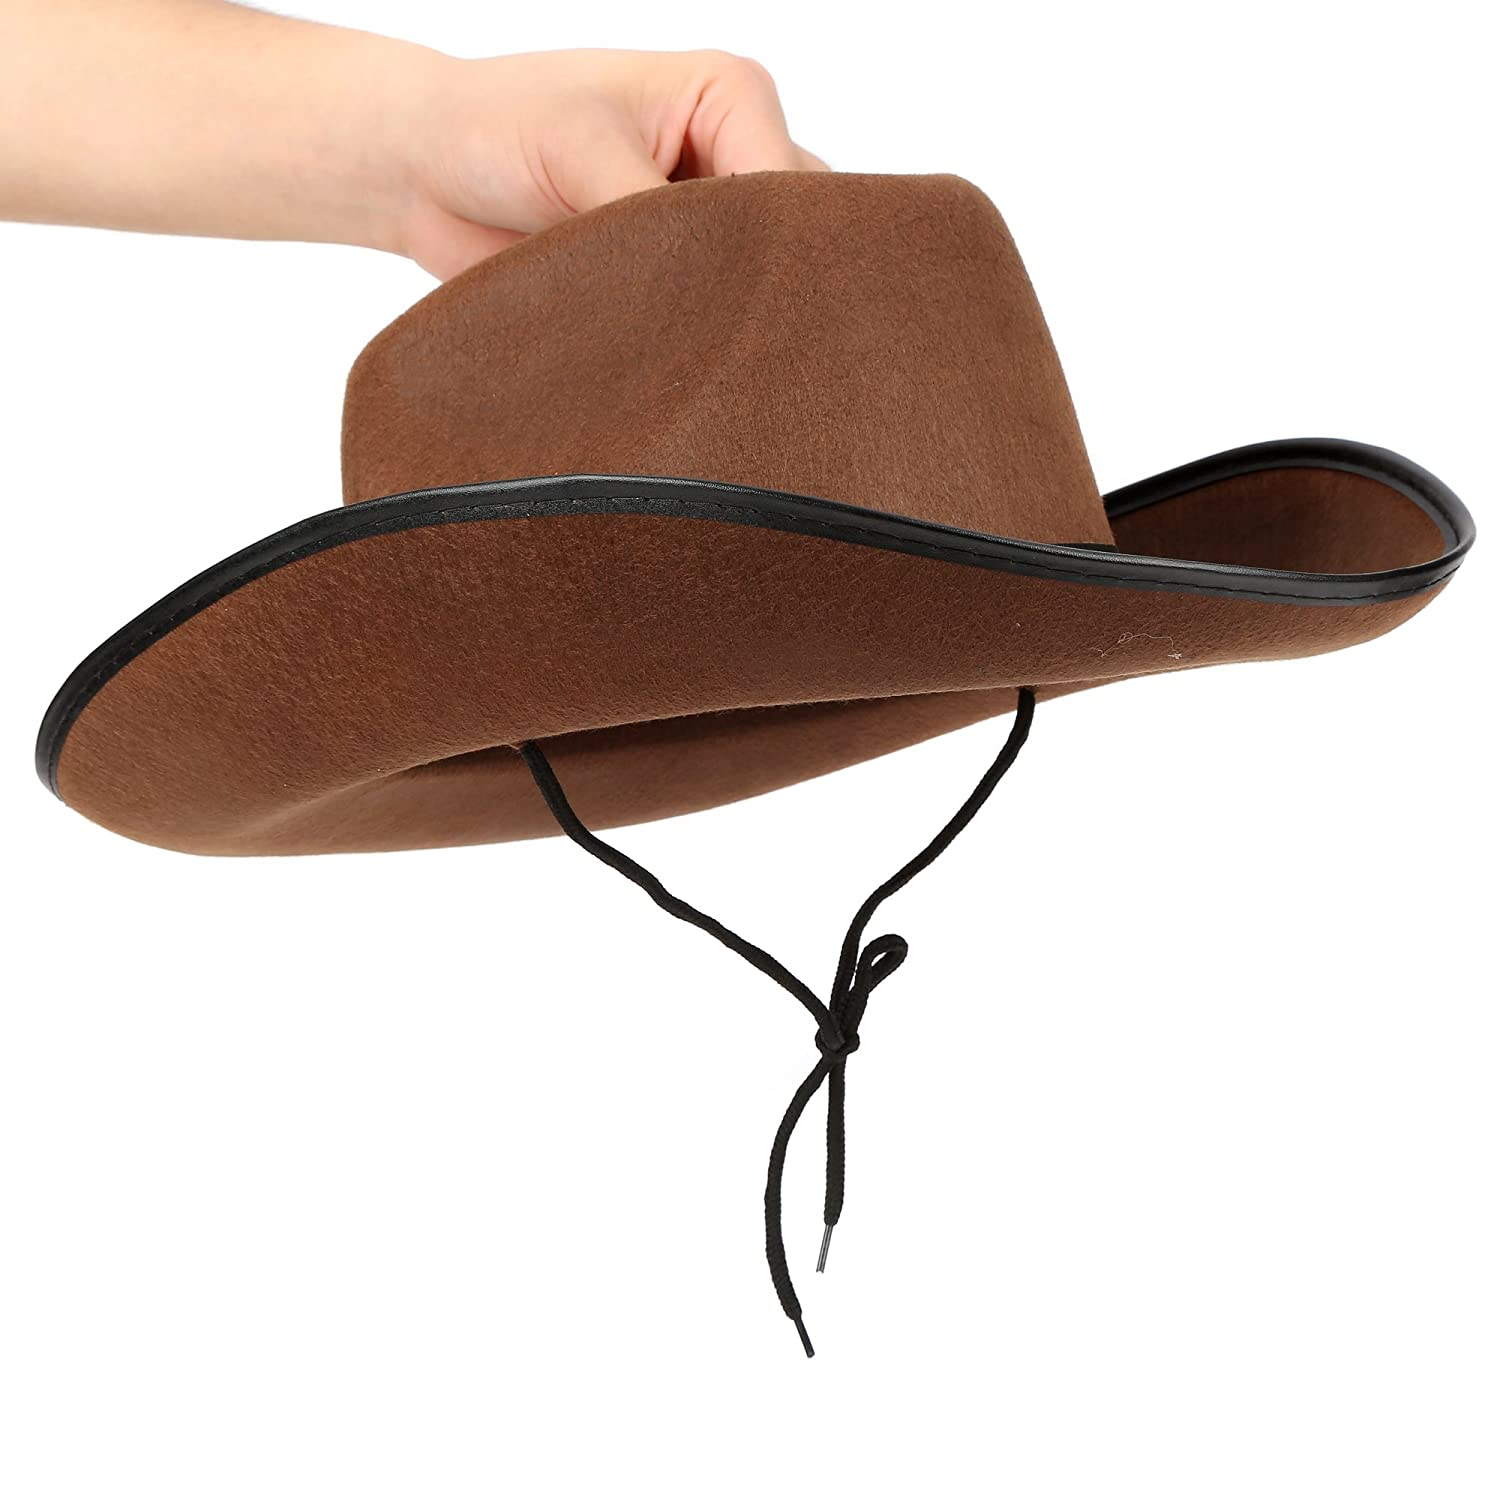 Fun Central AZ963, 1 Pc Brown Felt Studded Cowboy Hat, Cowboy Toy Hat for Men, Western Cowboy Hat